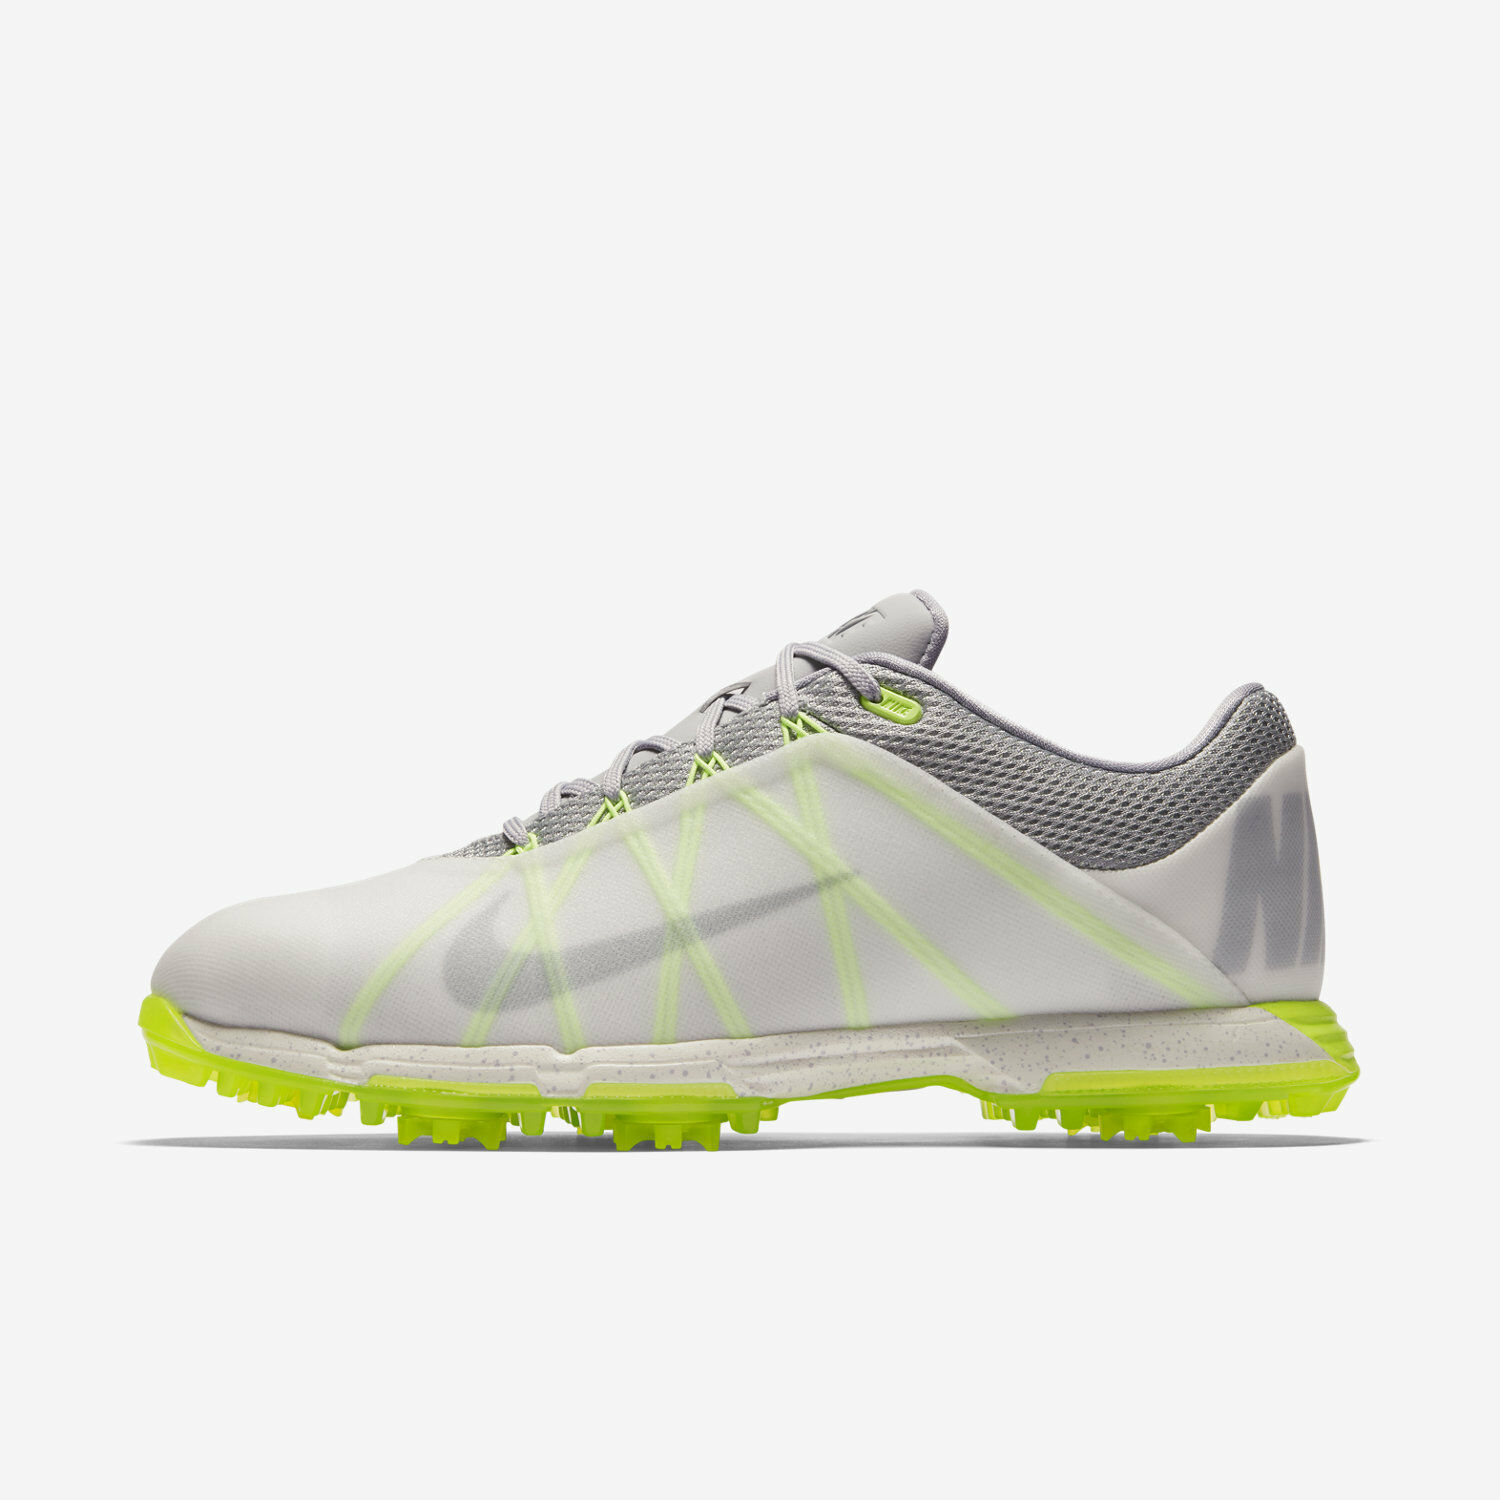 Nike Lunar Fire Men's Golf Shoes - Clear Gray Green 853738-900